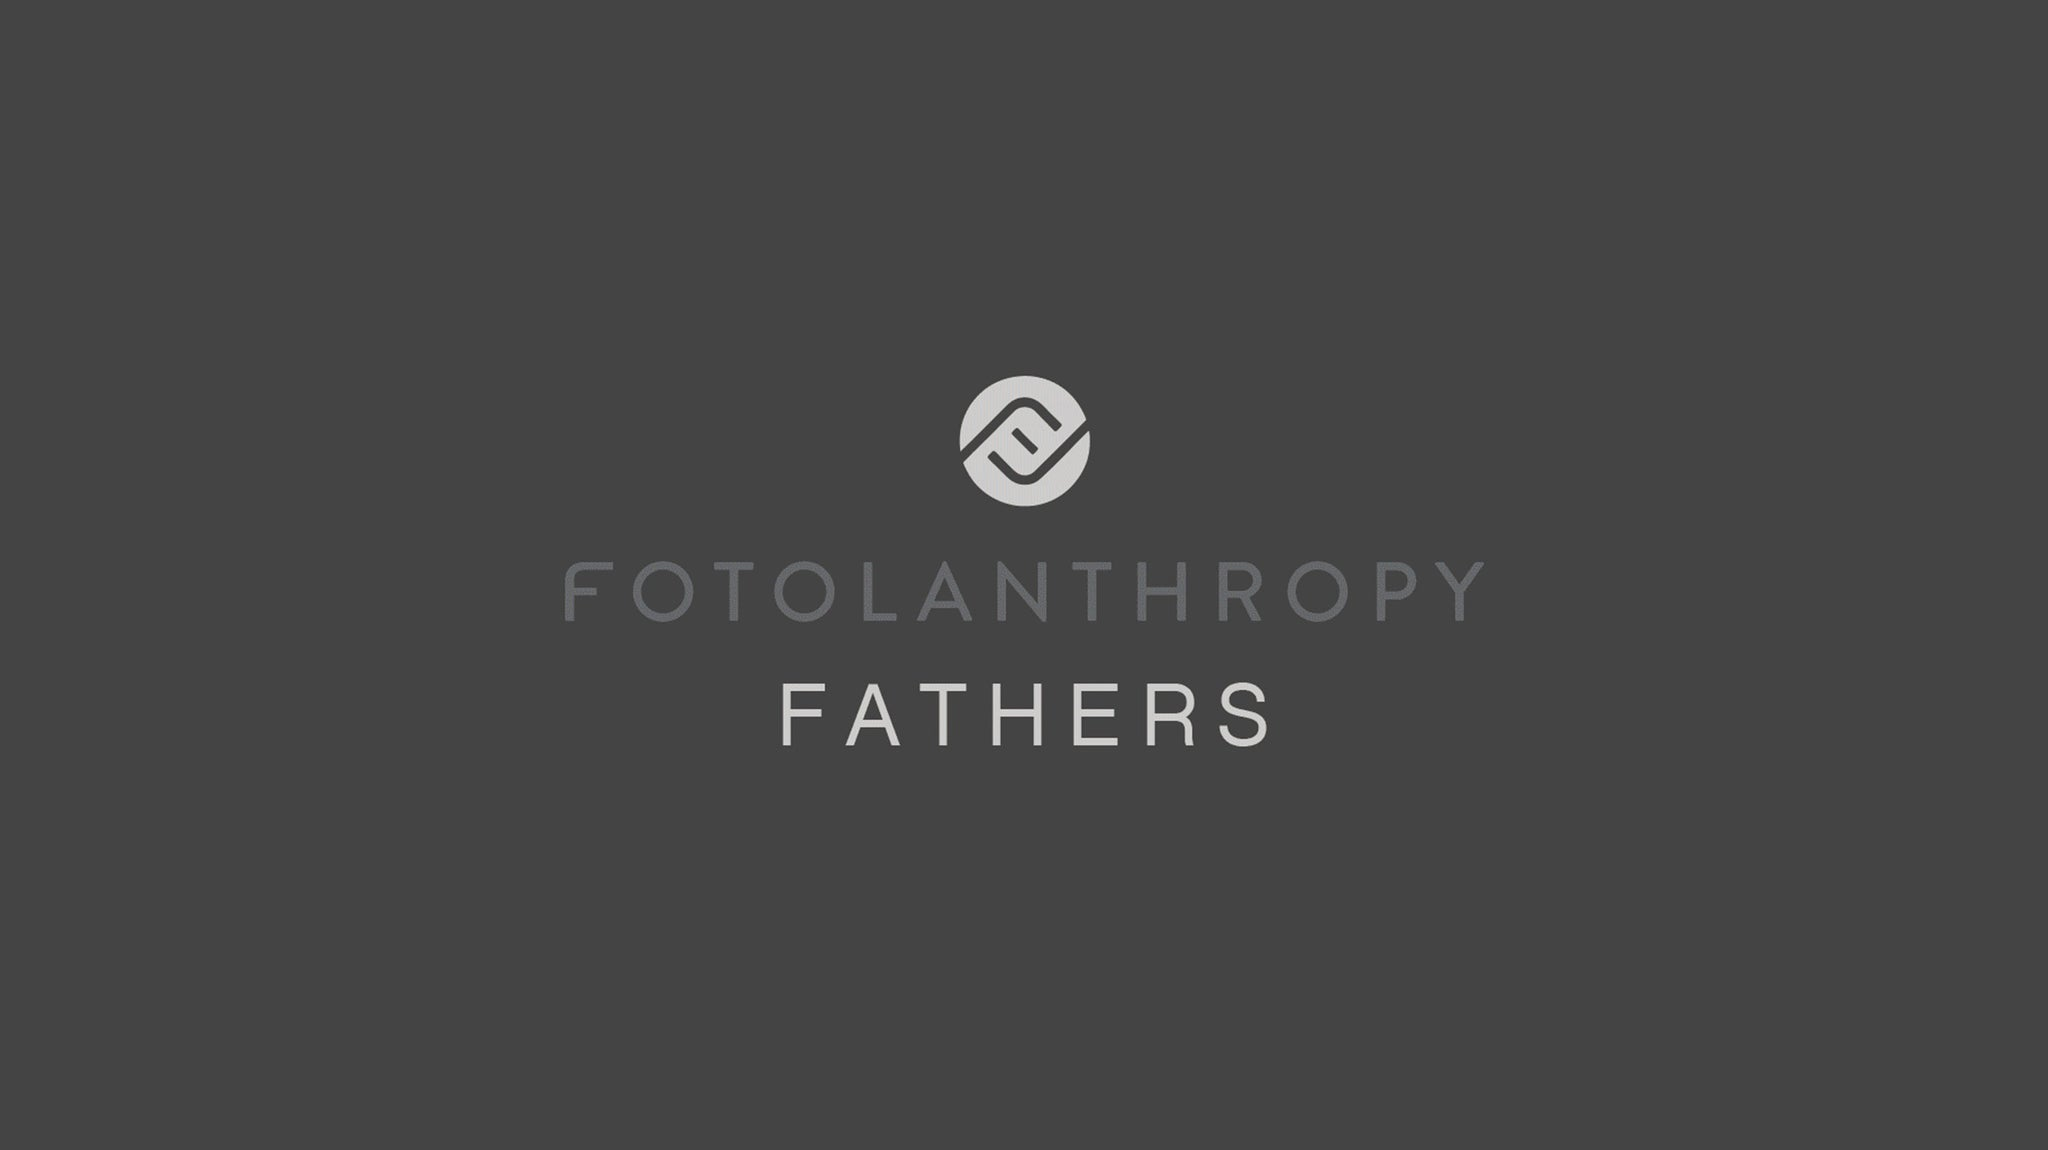 Fotolanthropy Fathers for Father's Day | FOTO Blog